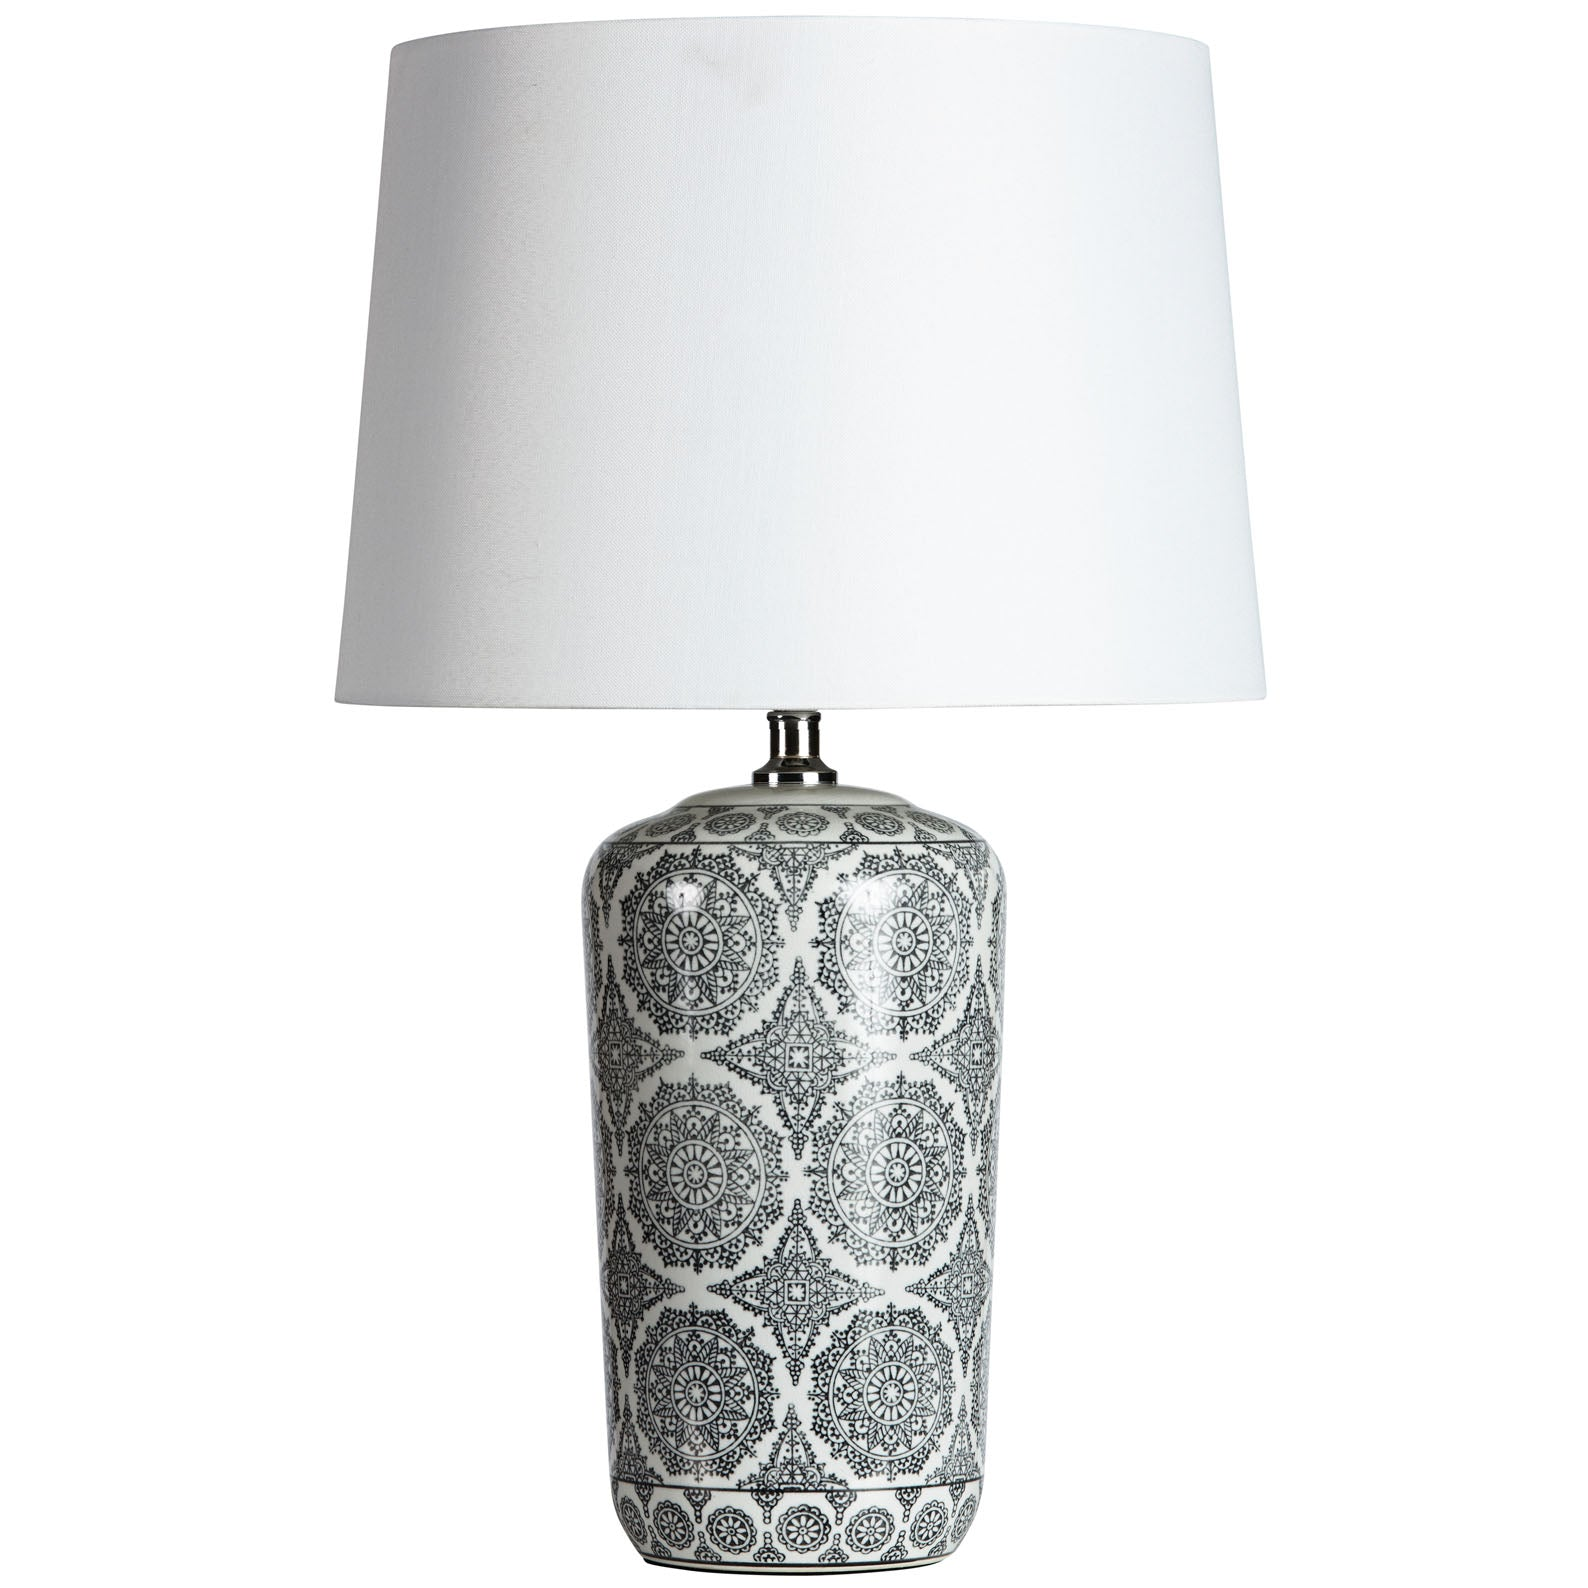 Barclay Black Table Lamp